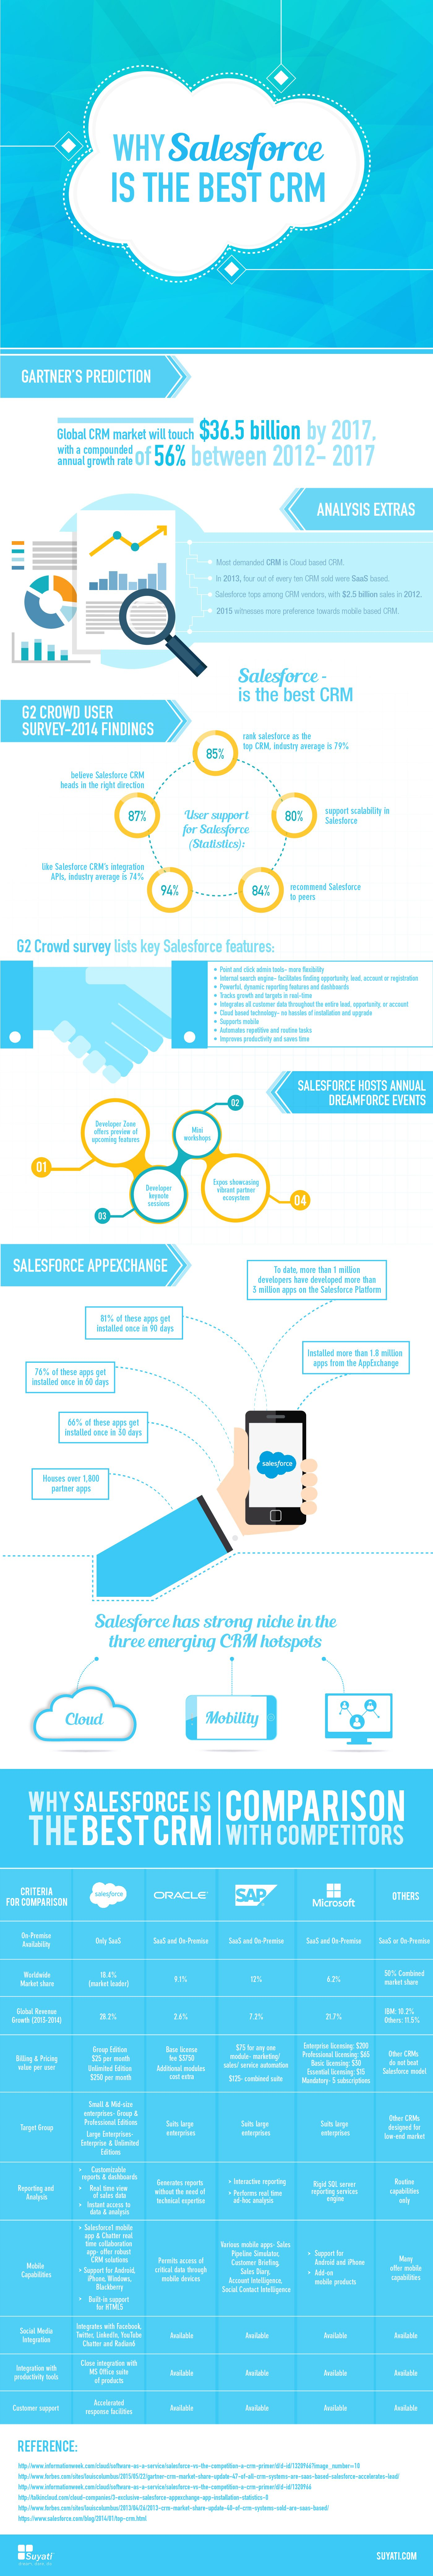 Why Salesforce is the best CRM-updated